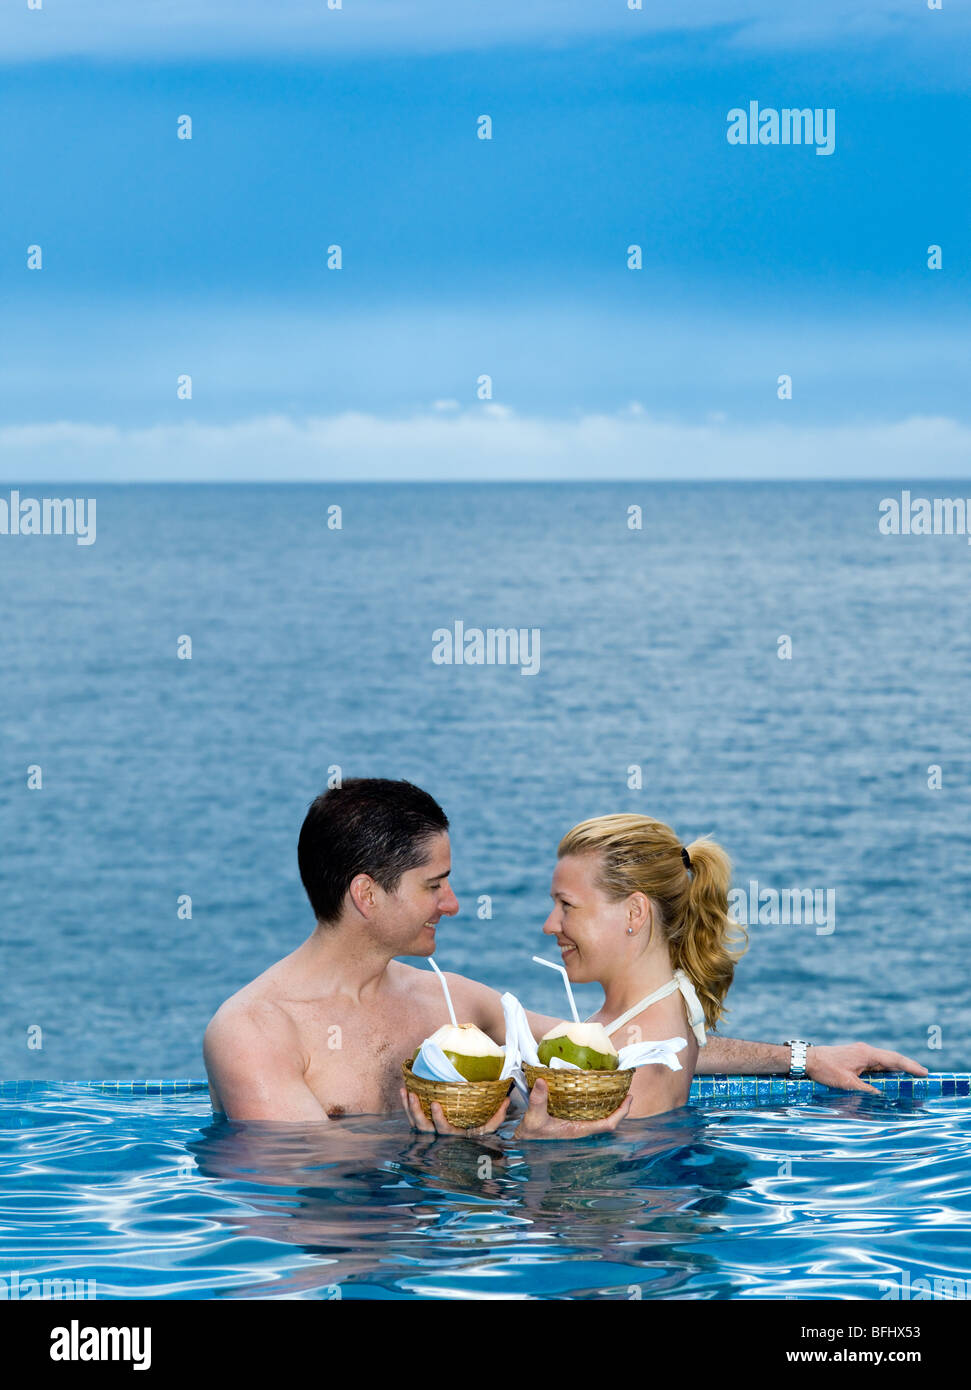 beautiful caucasian couple enjoying their vacation in a swimming pool by the seaside drinking coconut milk - Stock Image